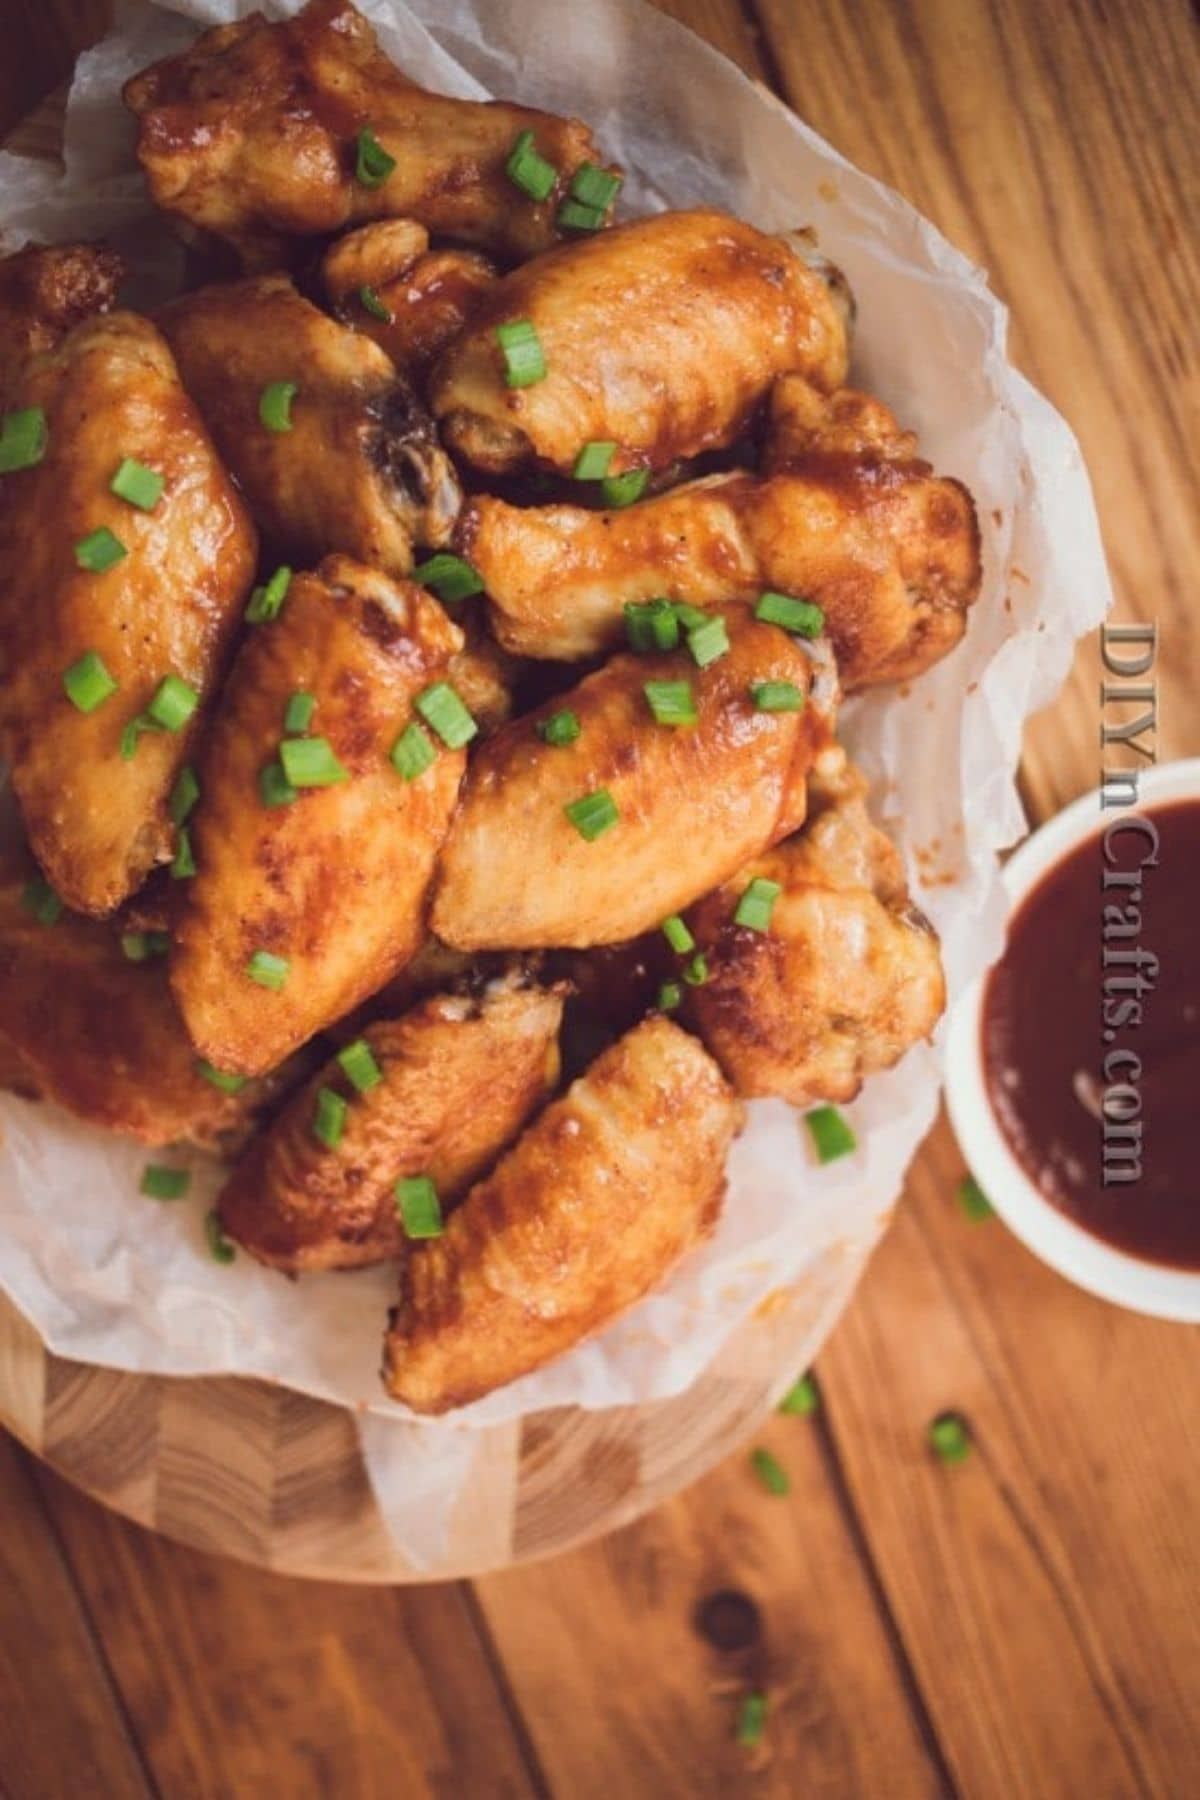 Chicken wings in bowl